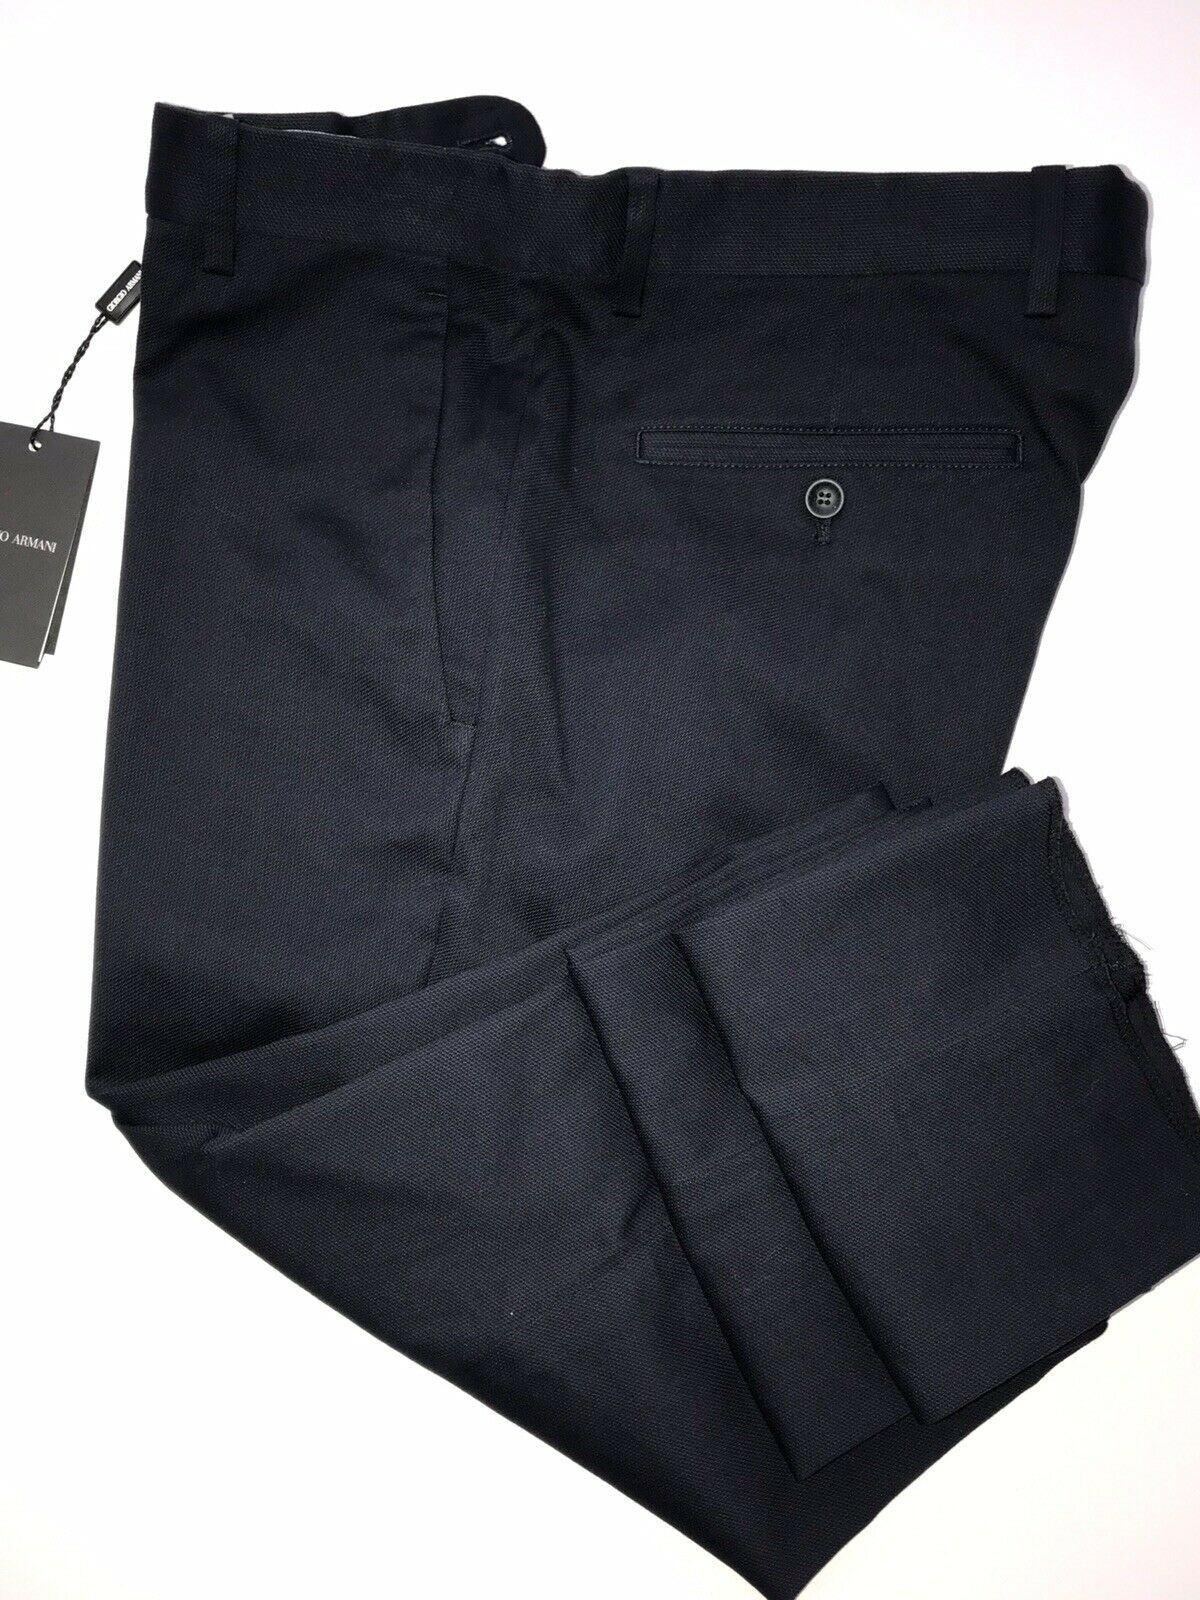 New $595 Giorgio Armani Men's Cotton Navy Casual Pants Size 34 US (50 Eu) Italy